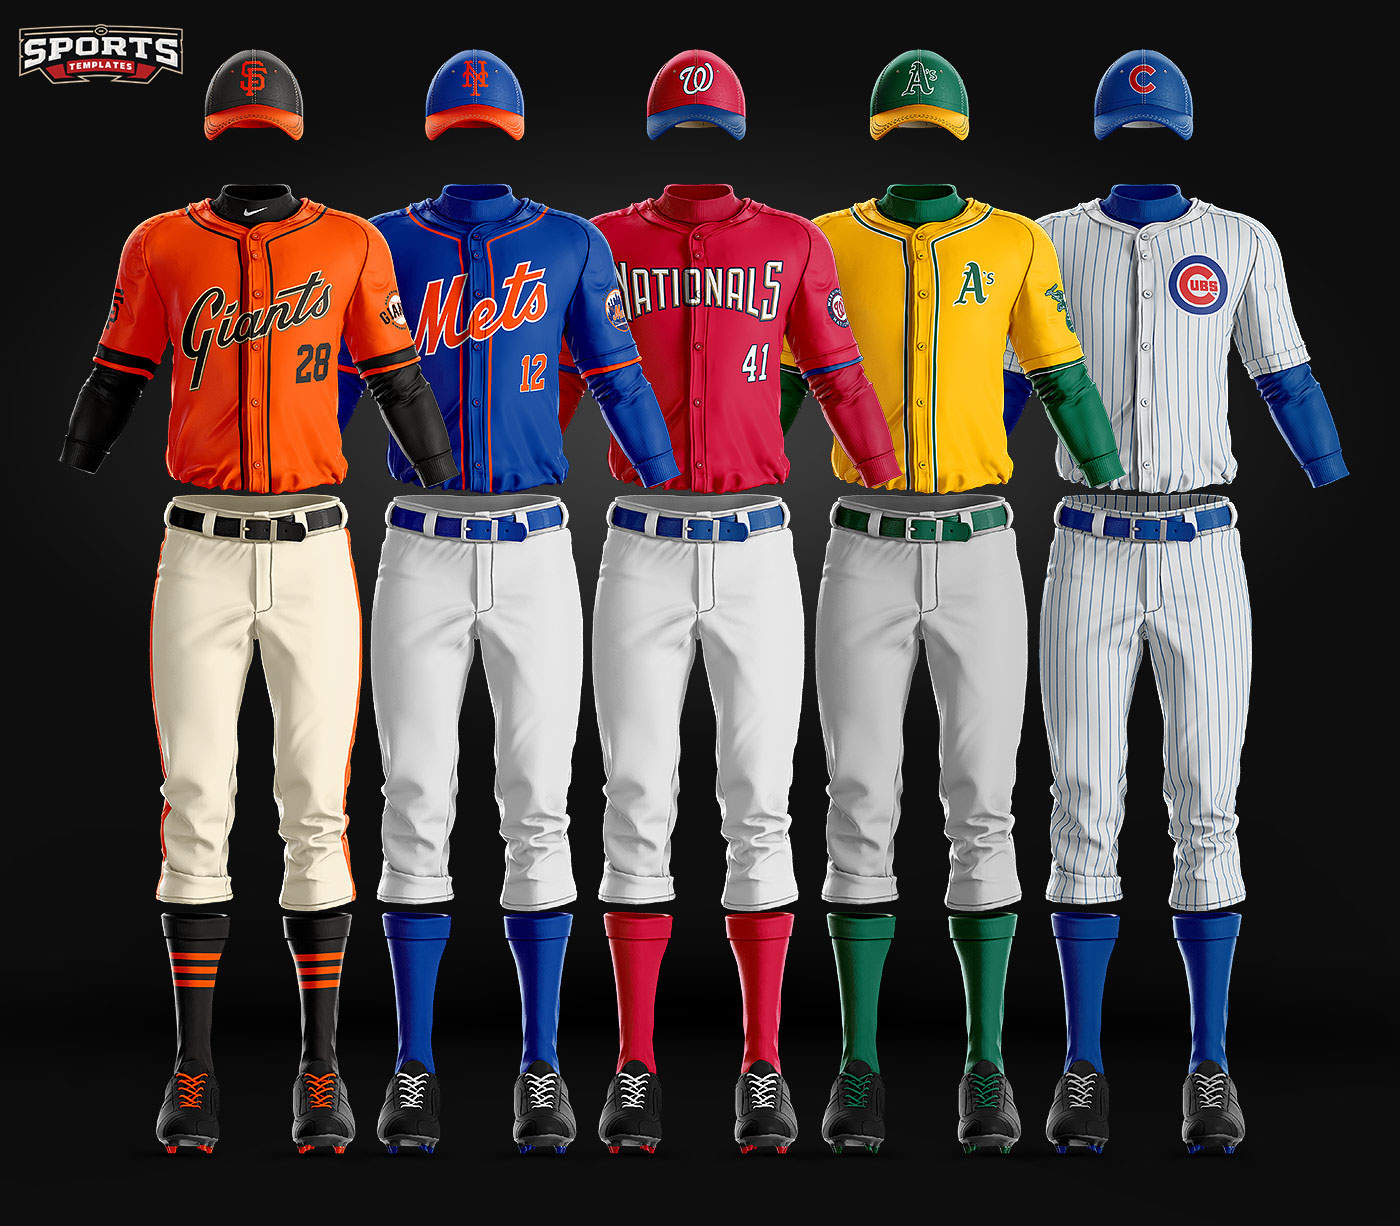 The most realistic baseball uniform photoshop template for Softball uniform design templates